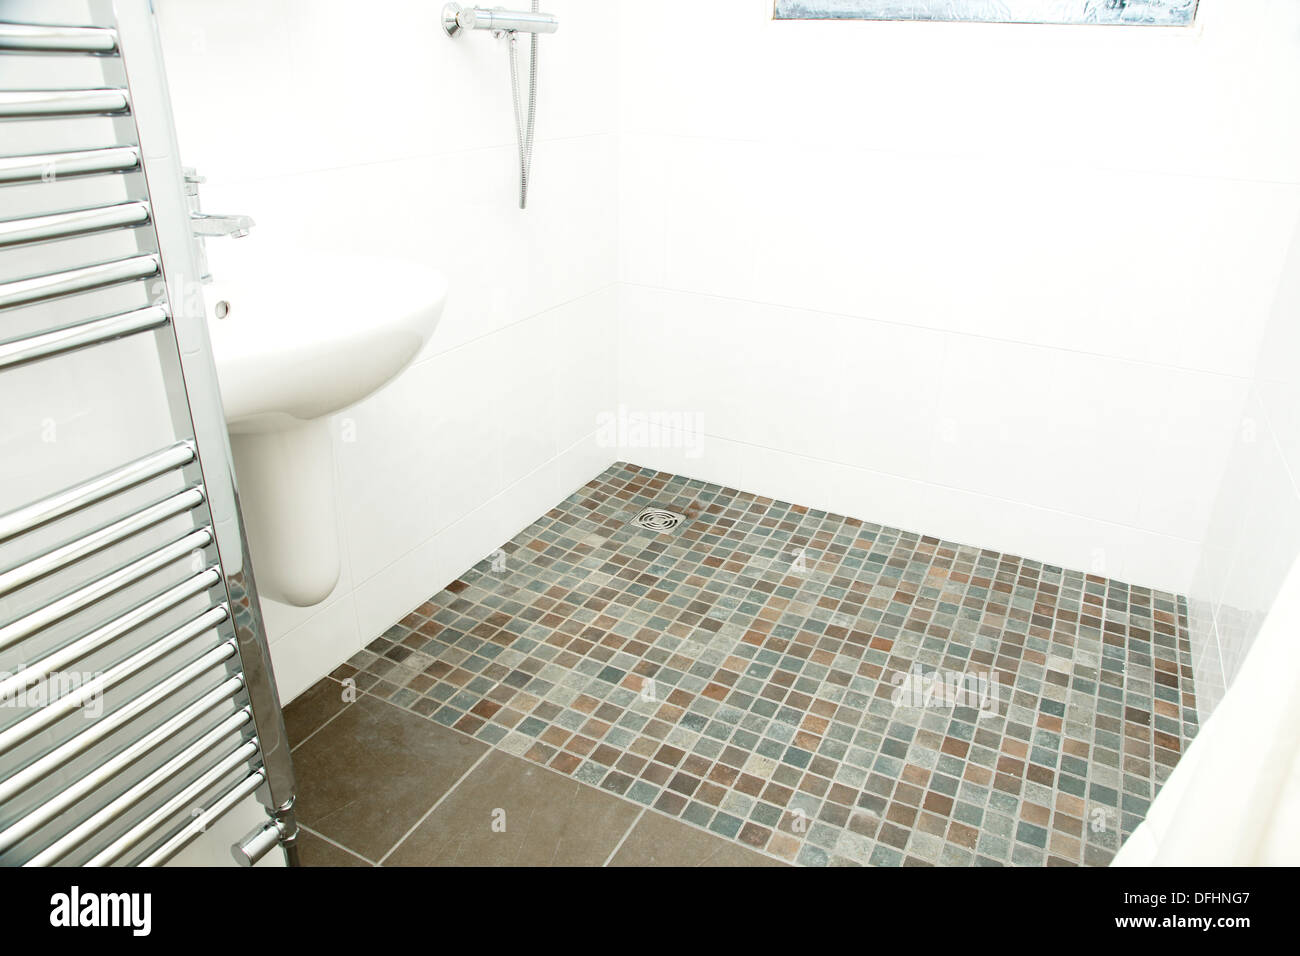 A Specially Adapted Wet Room Shower Bathroom With Non